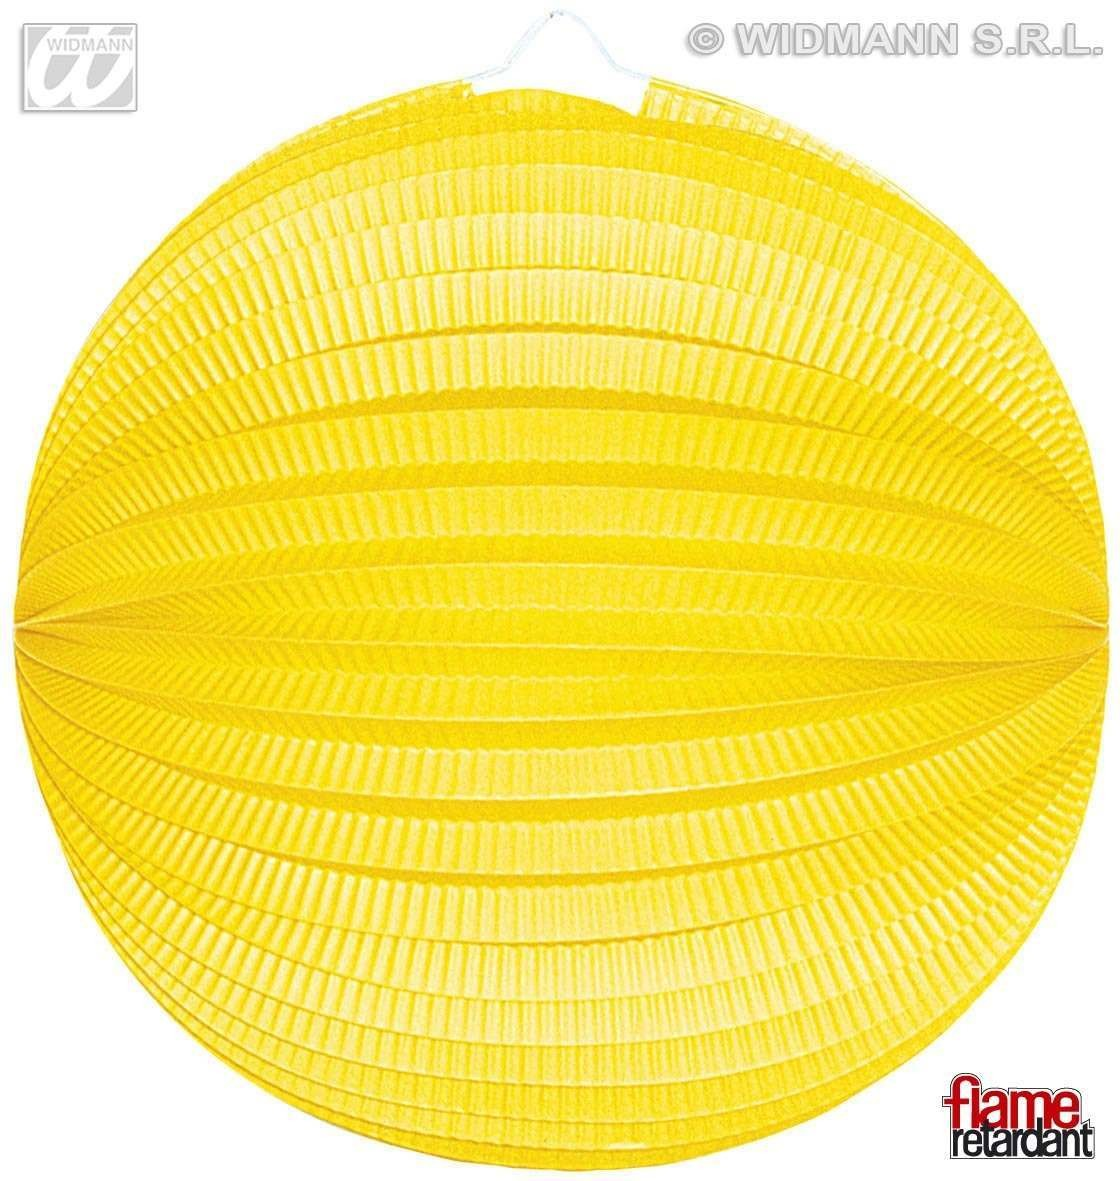 Unicolour Paper Balls 33Cm 6 Cols Flame Ret Fancy Dress